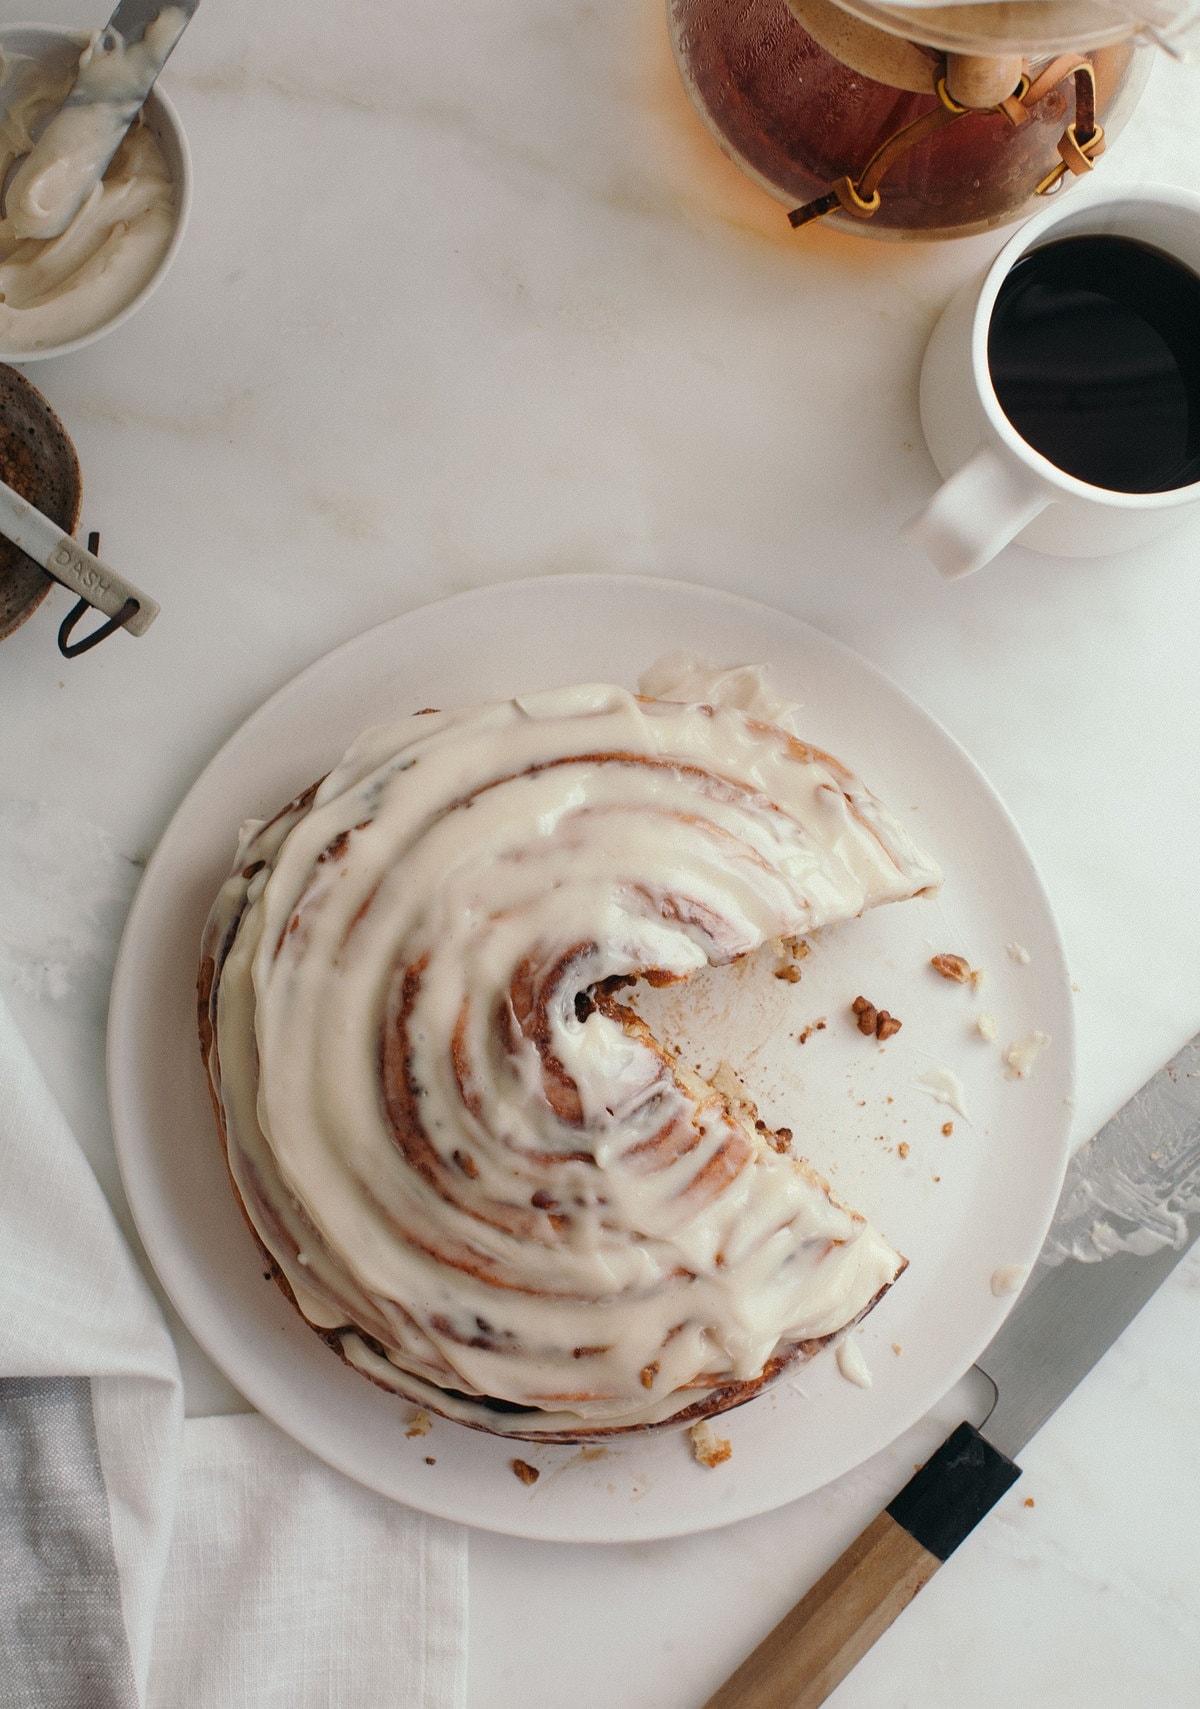 Giant Cinnamon Roll